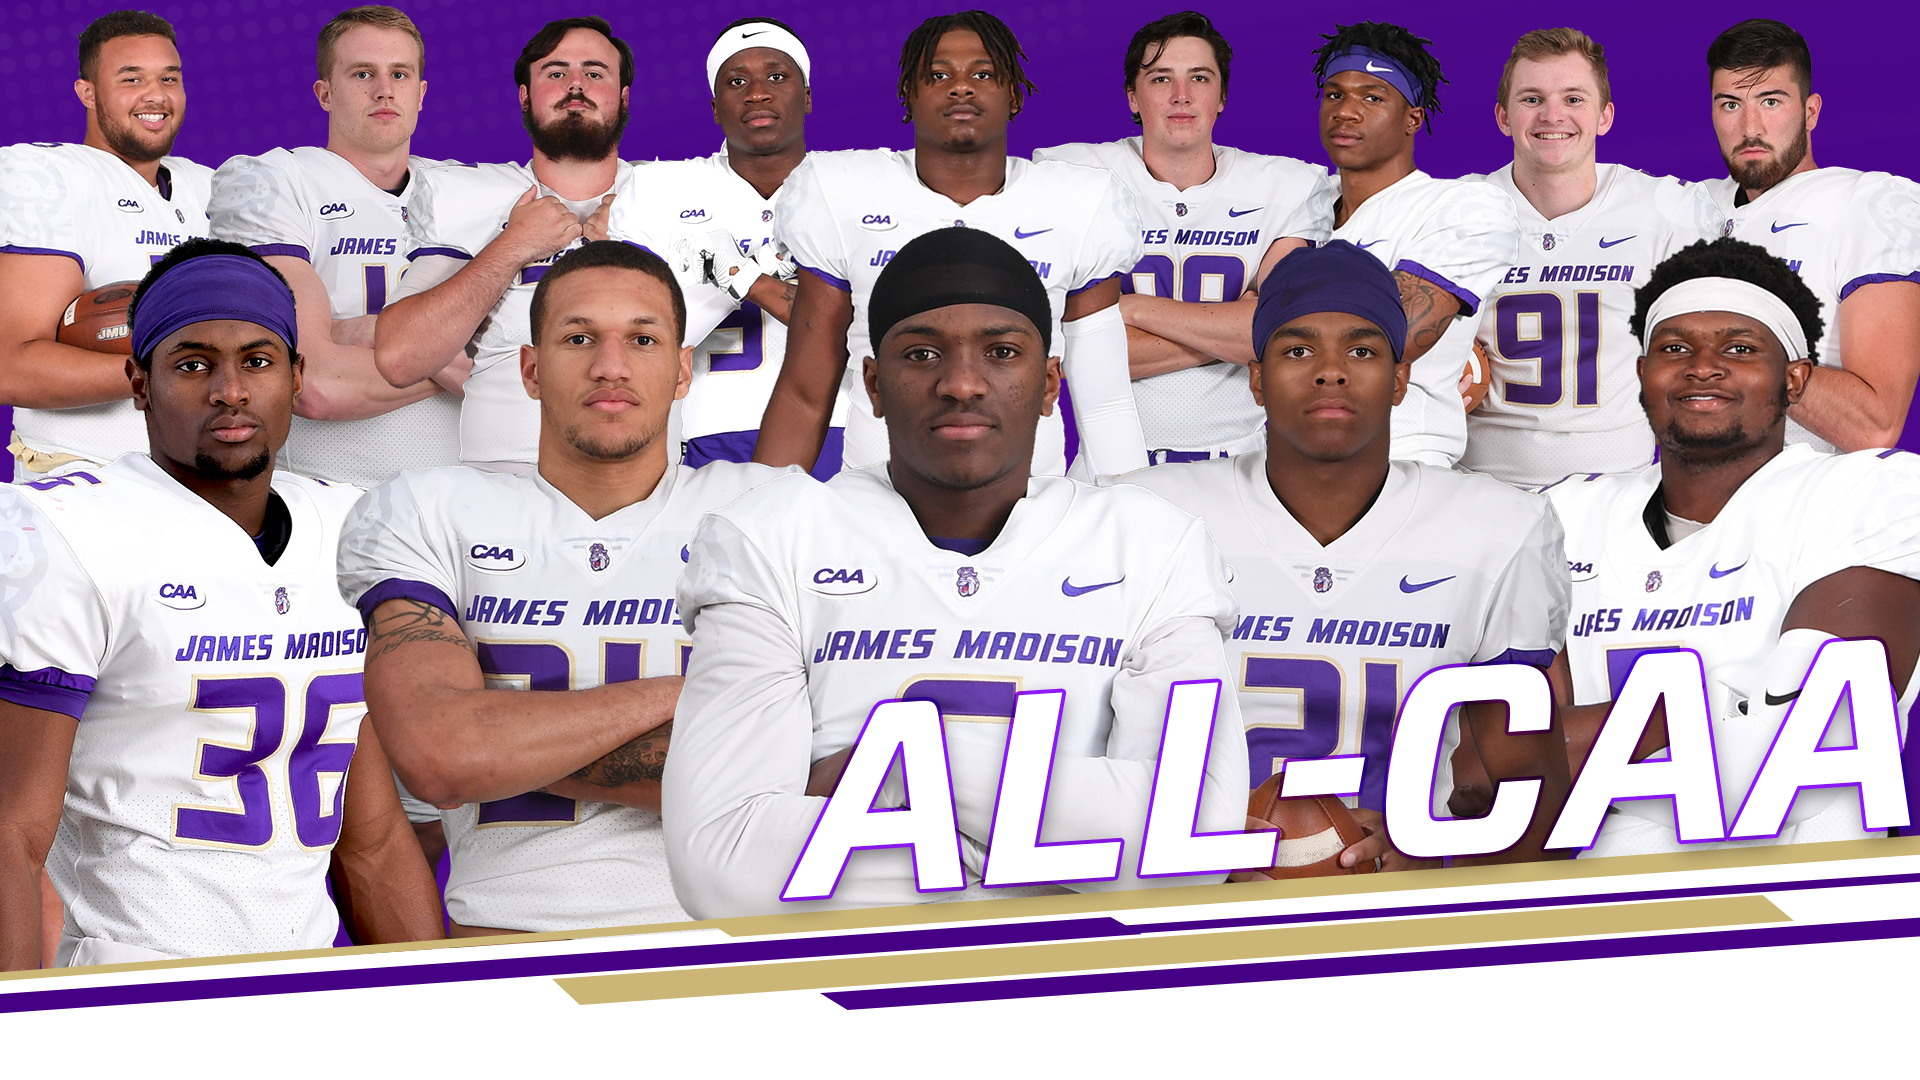 Football: Moreland Voted CAA's Top Defender, JMU Leads League with 14 All-CAA Honorees